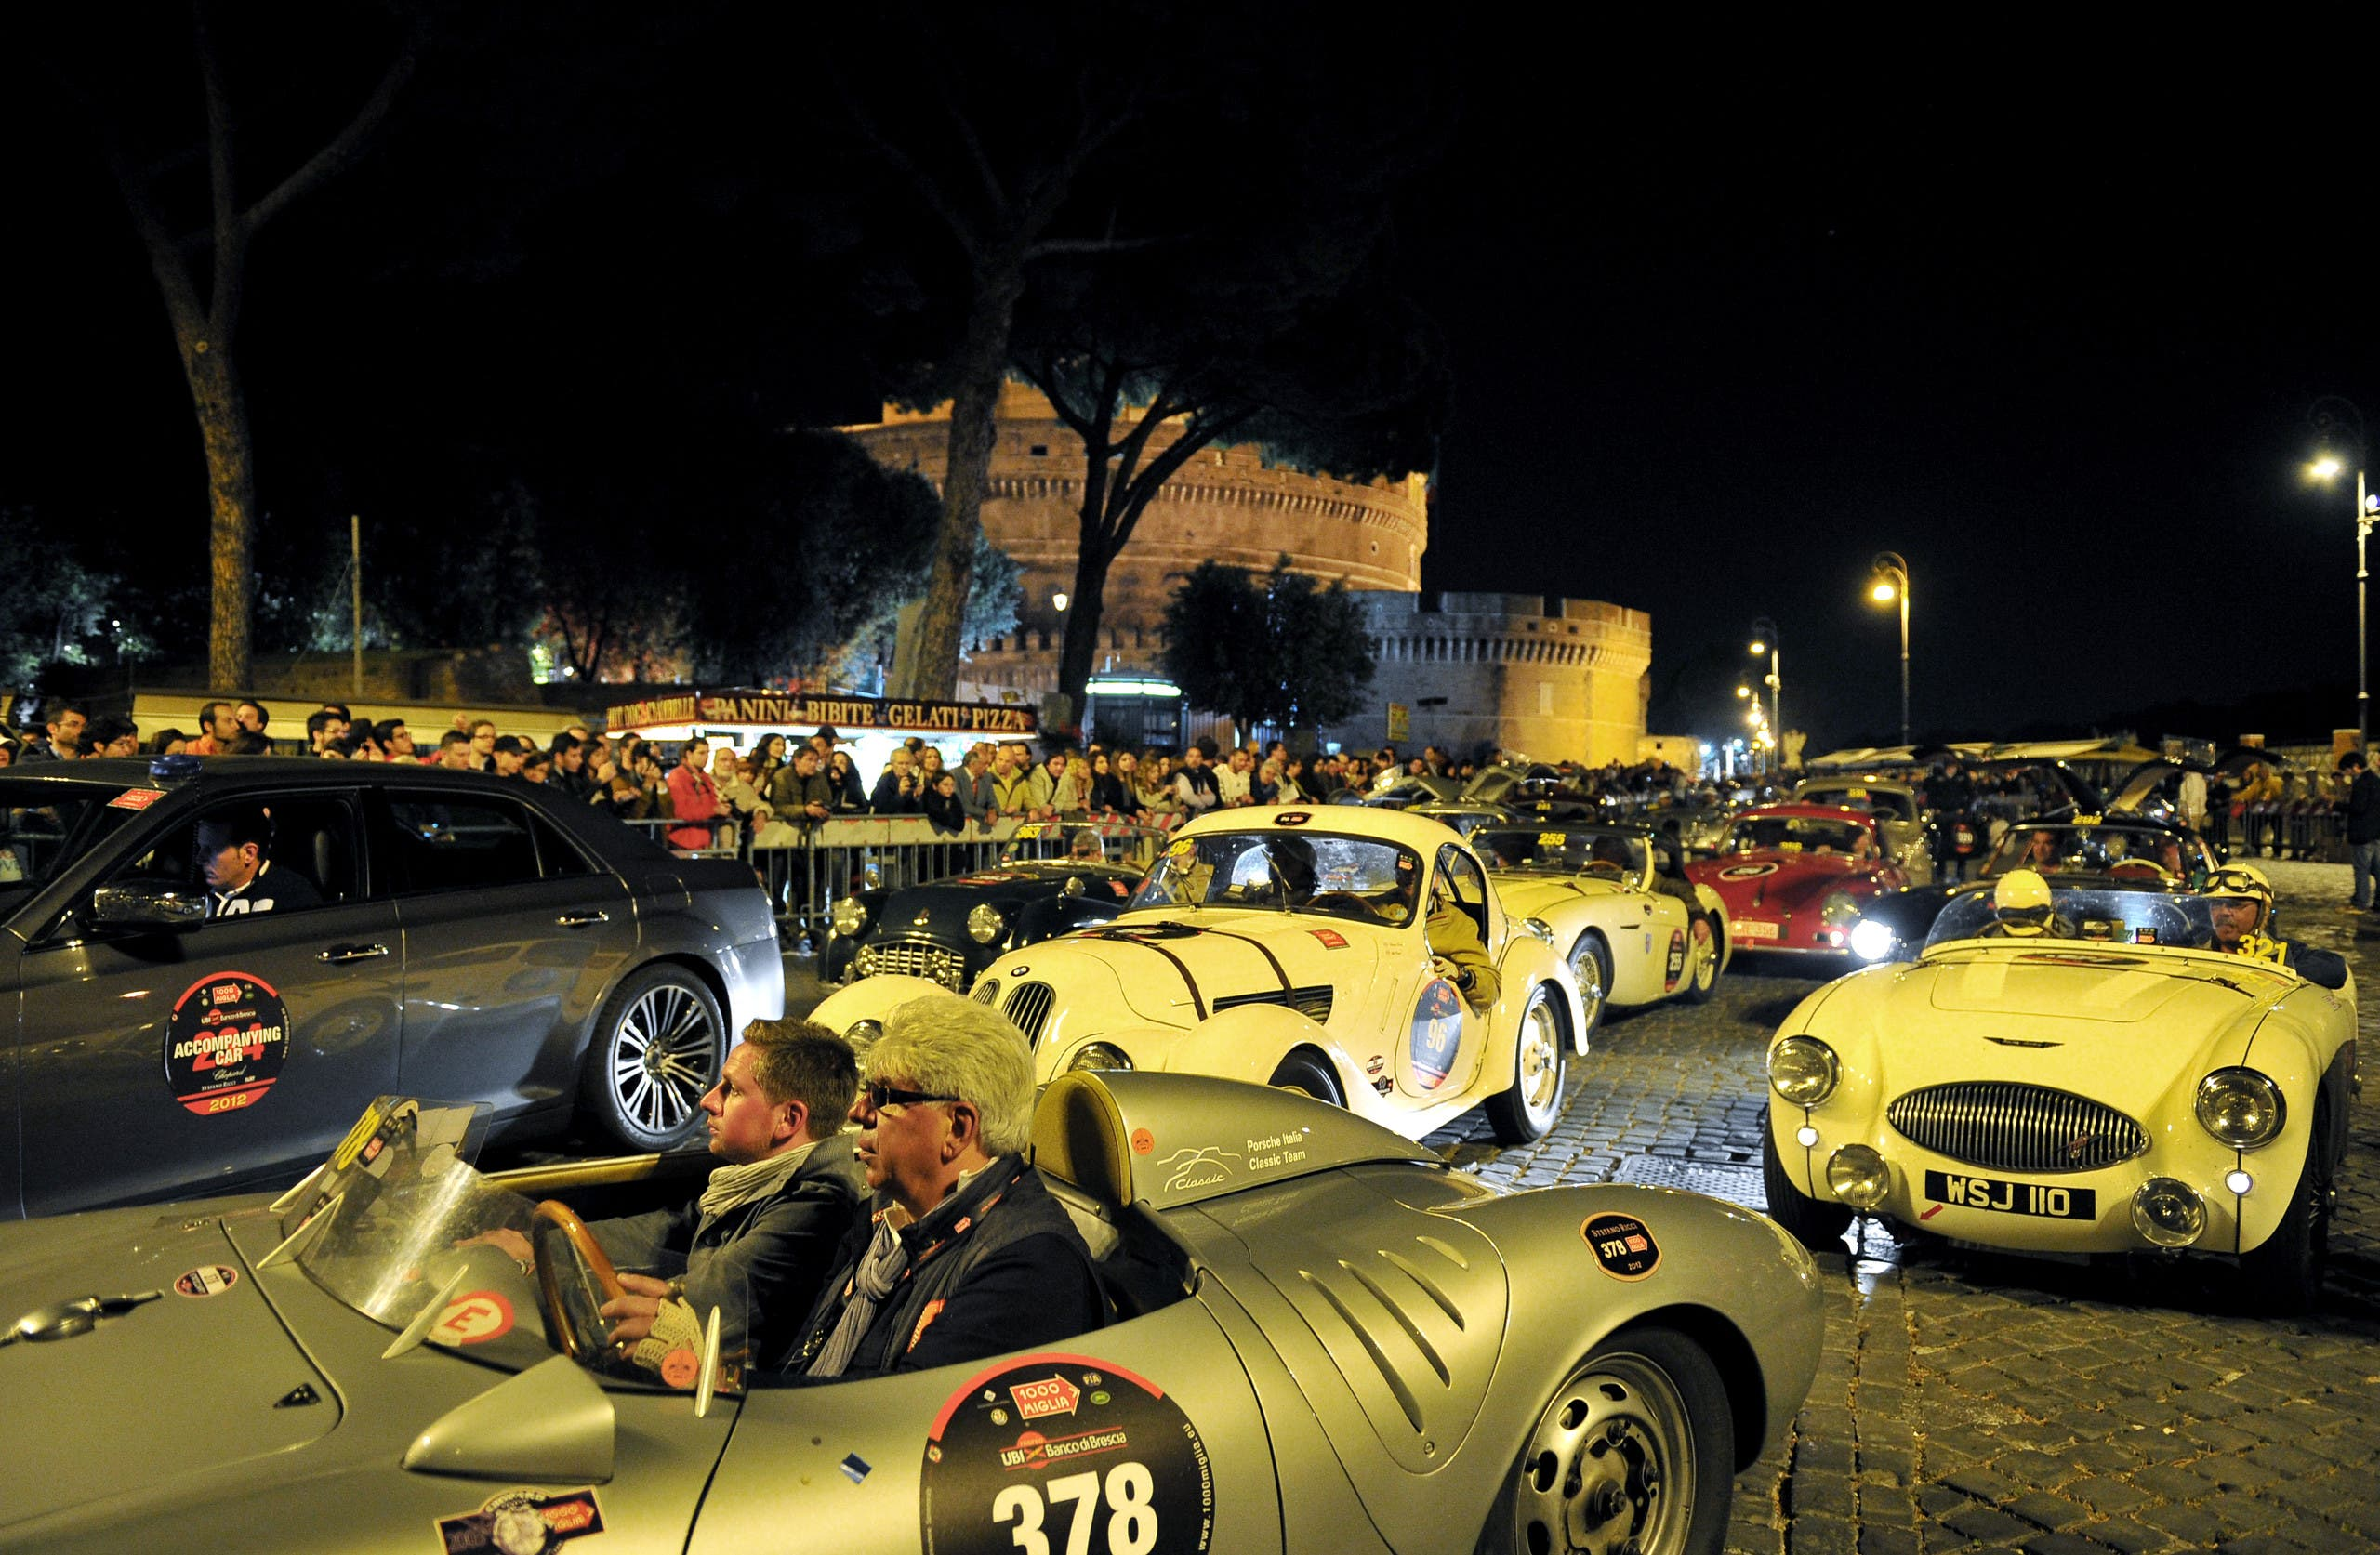 Vintage cars pass by Castel Sant'Angelo during Mille Miglia race arrival in Rome on May 18, 2012. This historic parade of classic machines called Mille miglia started in 1927 from Brescia to Rome and back. (File photo: AFP)